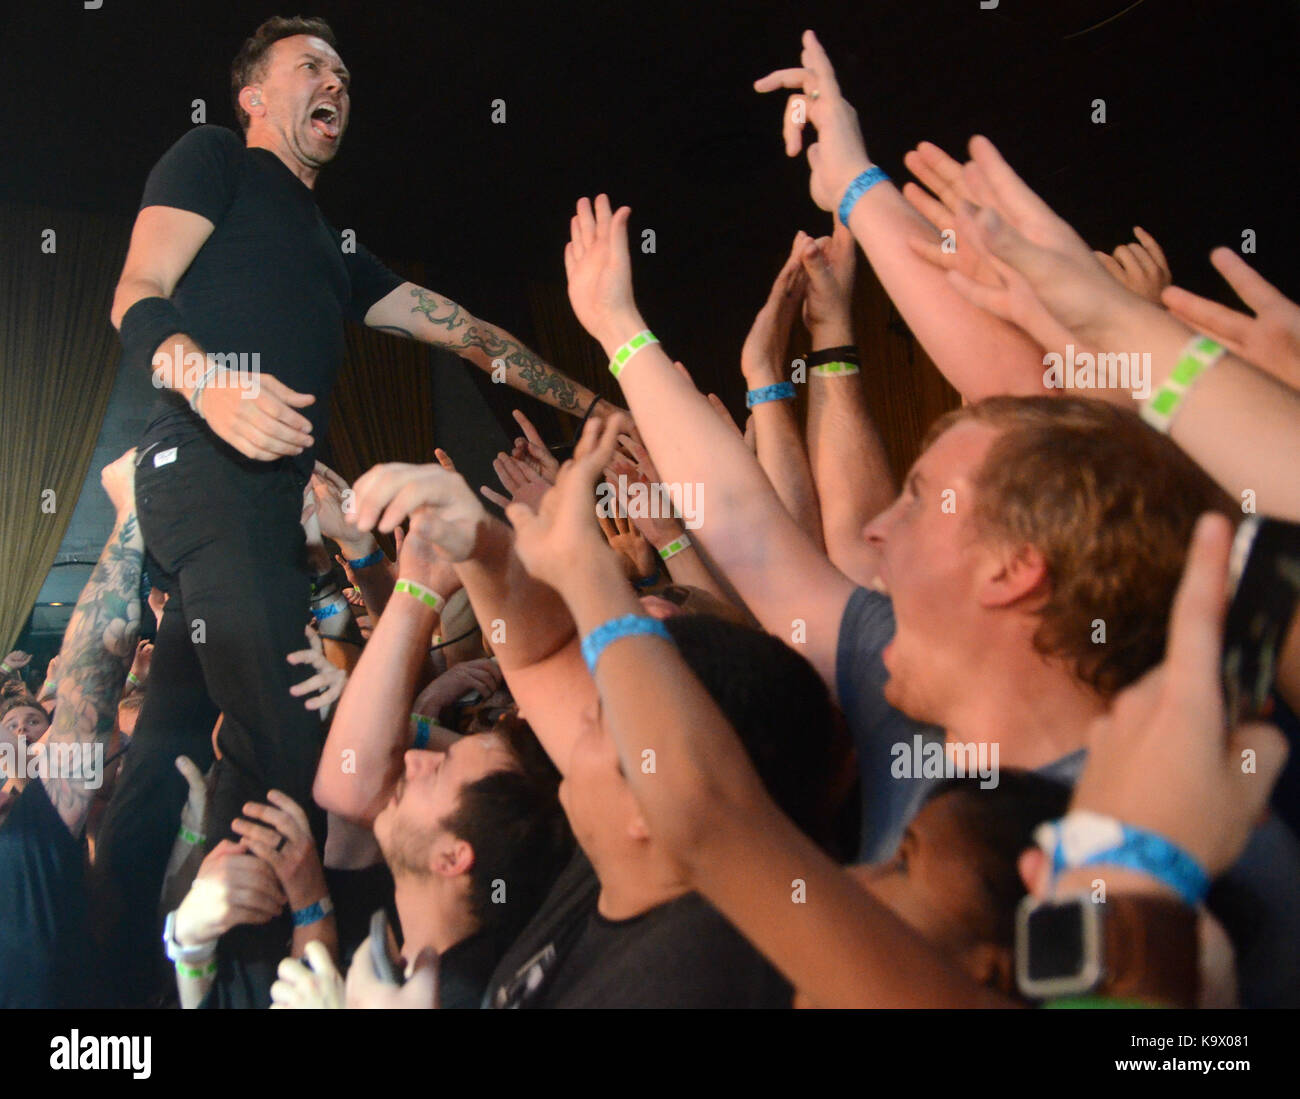 Minneapolis, Minnesota, USA. 23rd Sep, 2017. Lead singer Tim McIlrath of the band Rise Against performs at the Skyway - Stock Image